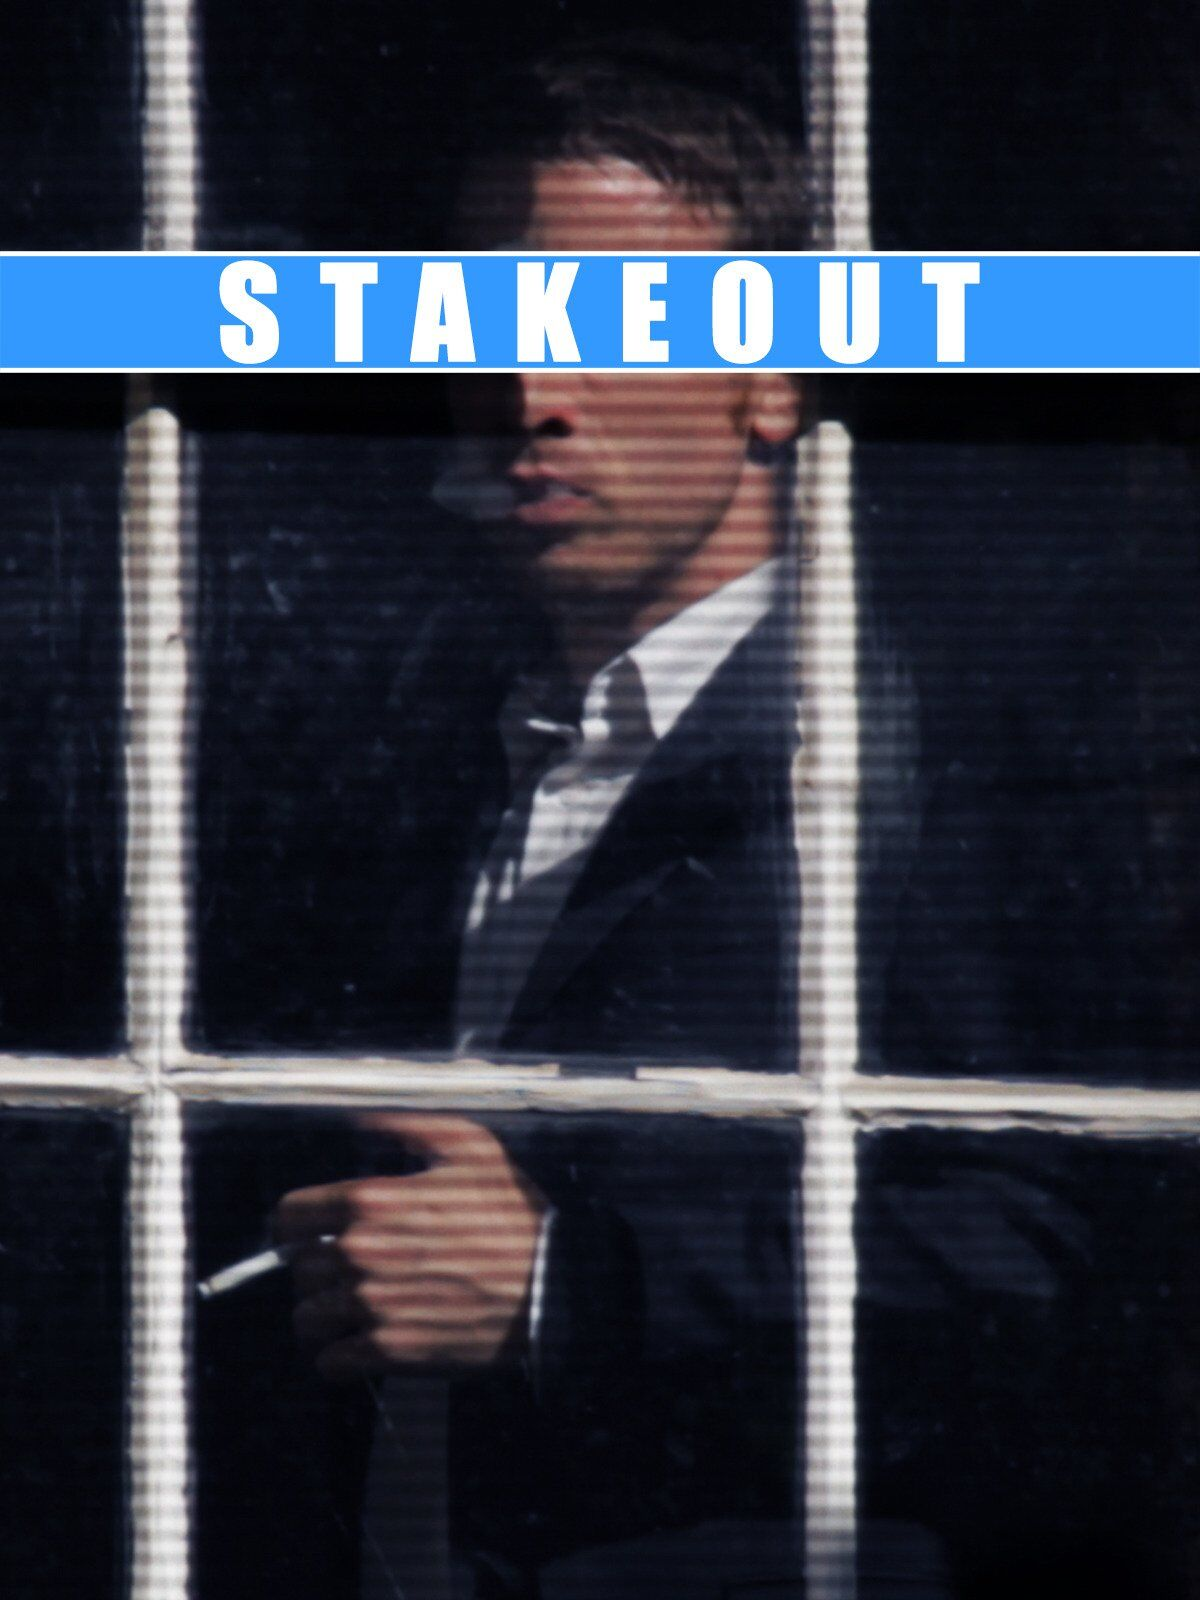 Stakeout (2011)